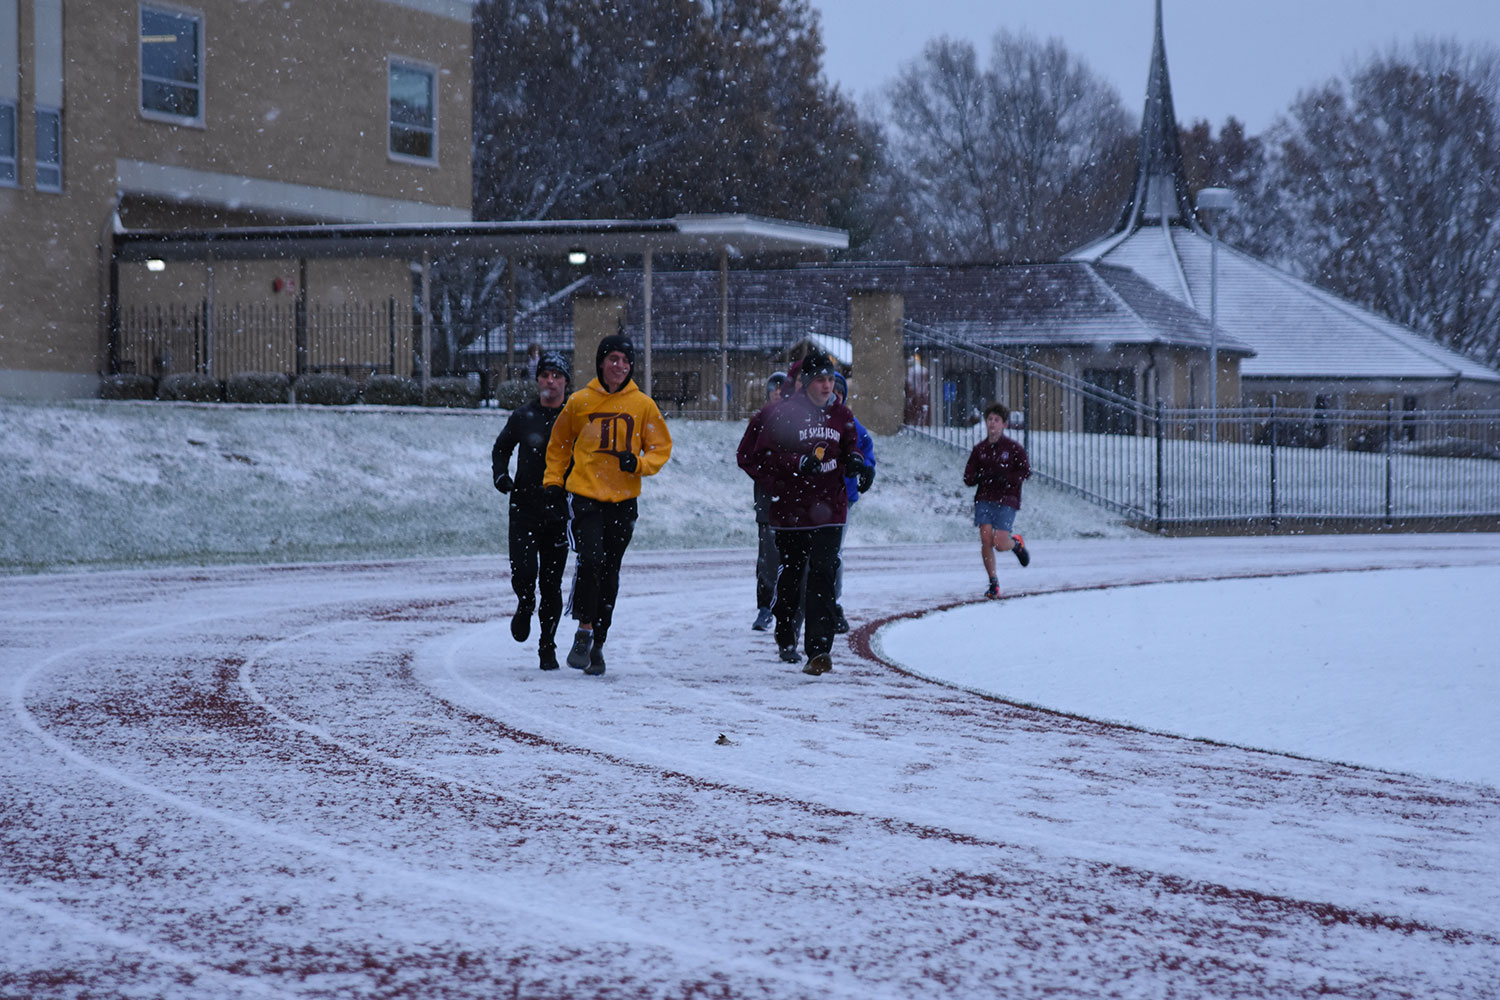 A group of runners led by Assistant Varisty Track Coach teacher Adam Boehm, run on a snowy day. The group runs throughout the winter preparing for the upcoming track season.